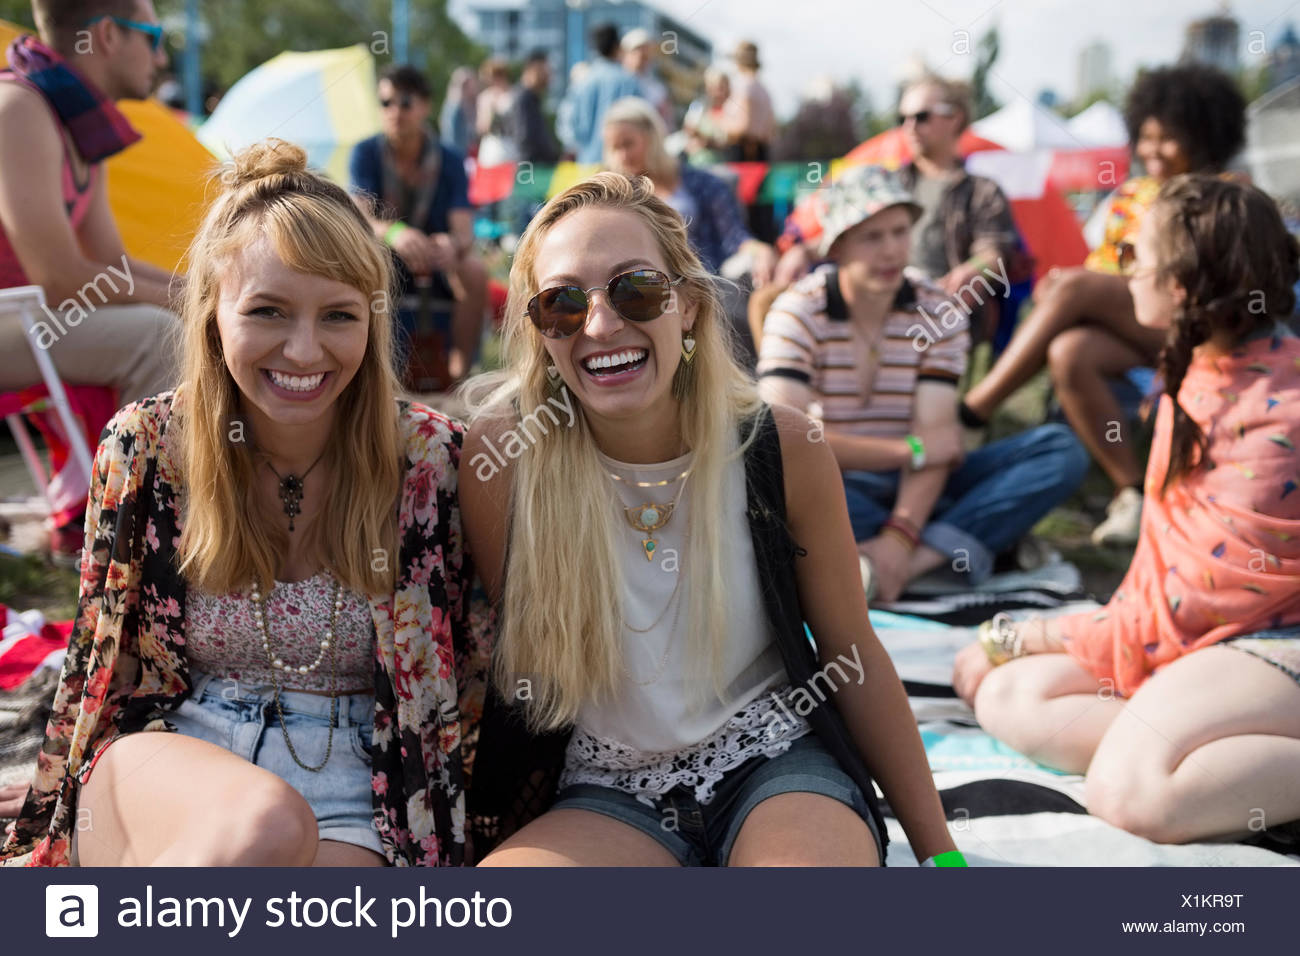 Portrait smiling young women at summer music festival camping Photo Stock